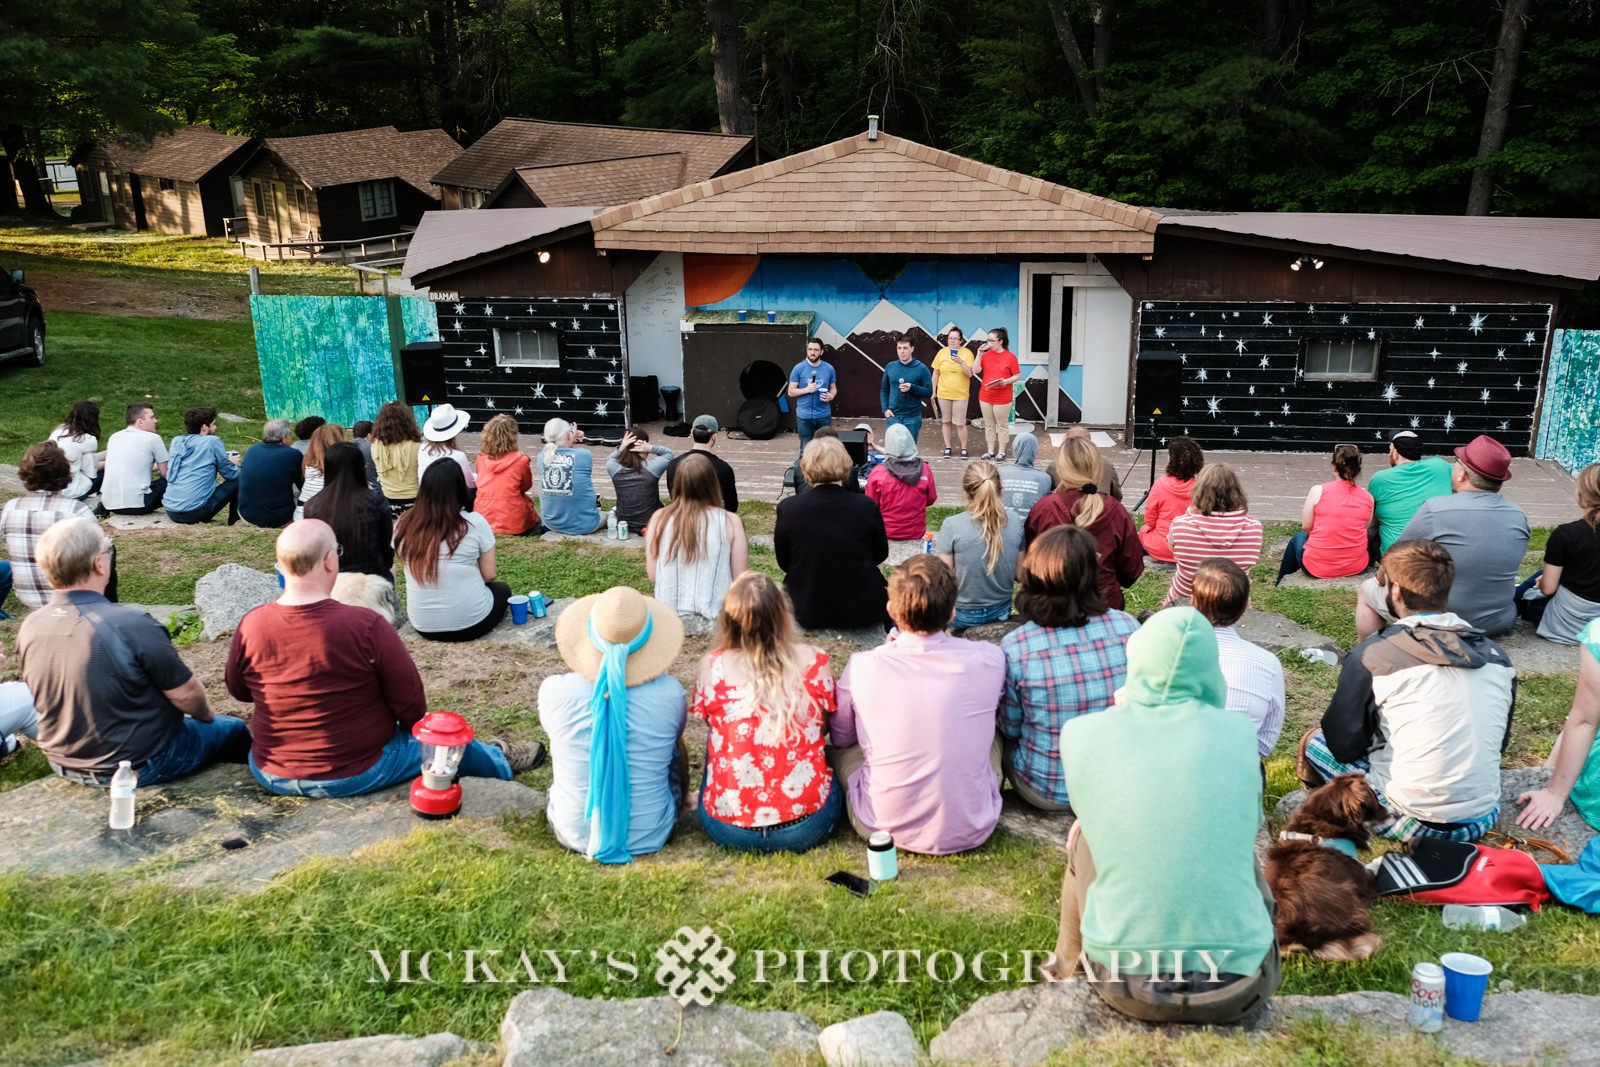 summer camp wedding venues in NY state and the Adirondacks